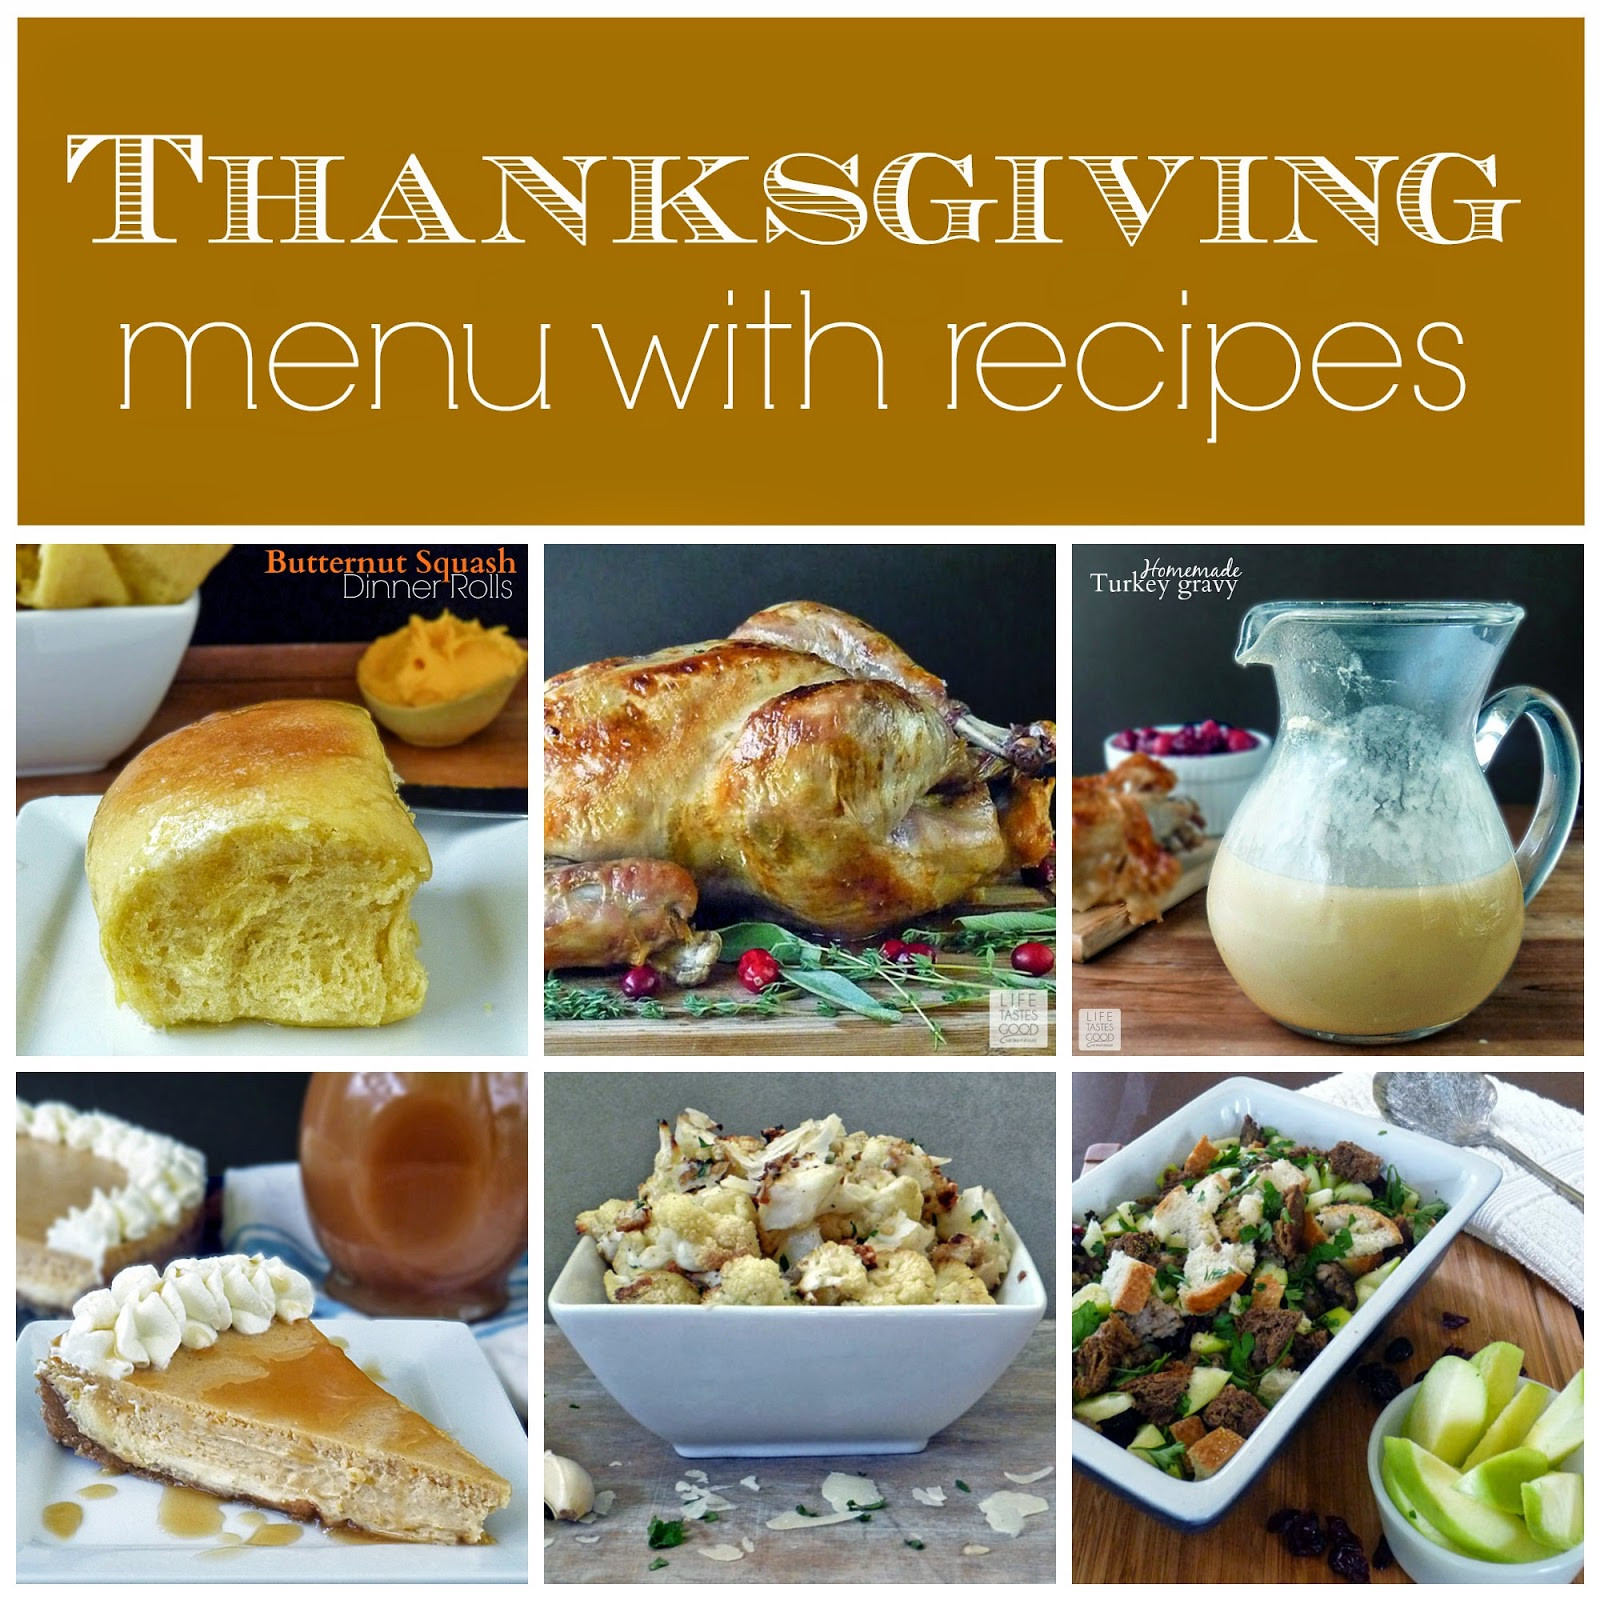 Traditional Thanksgiving Dinner Menu  Thanksgiving Dinner Menu and Recipes